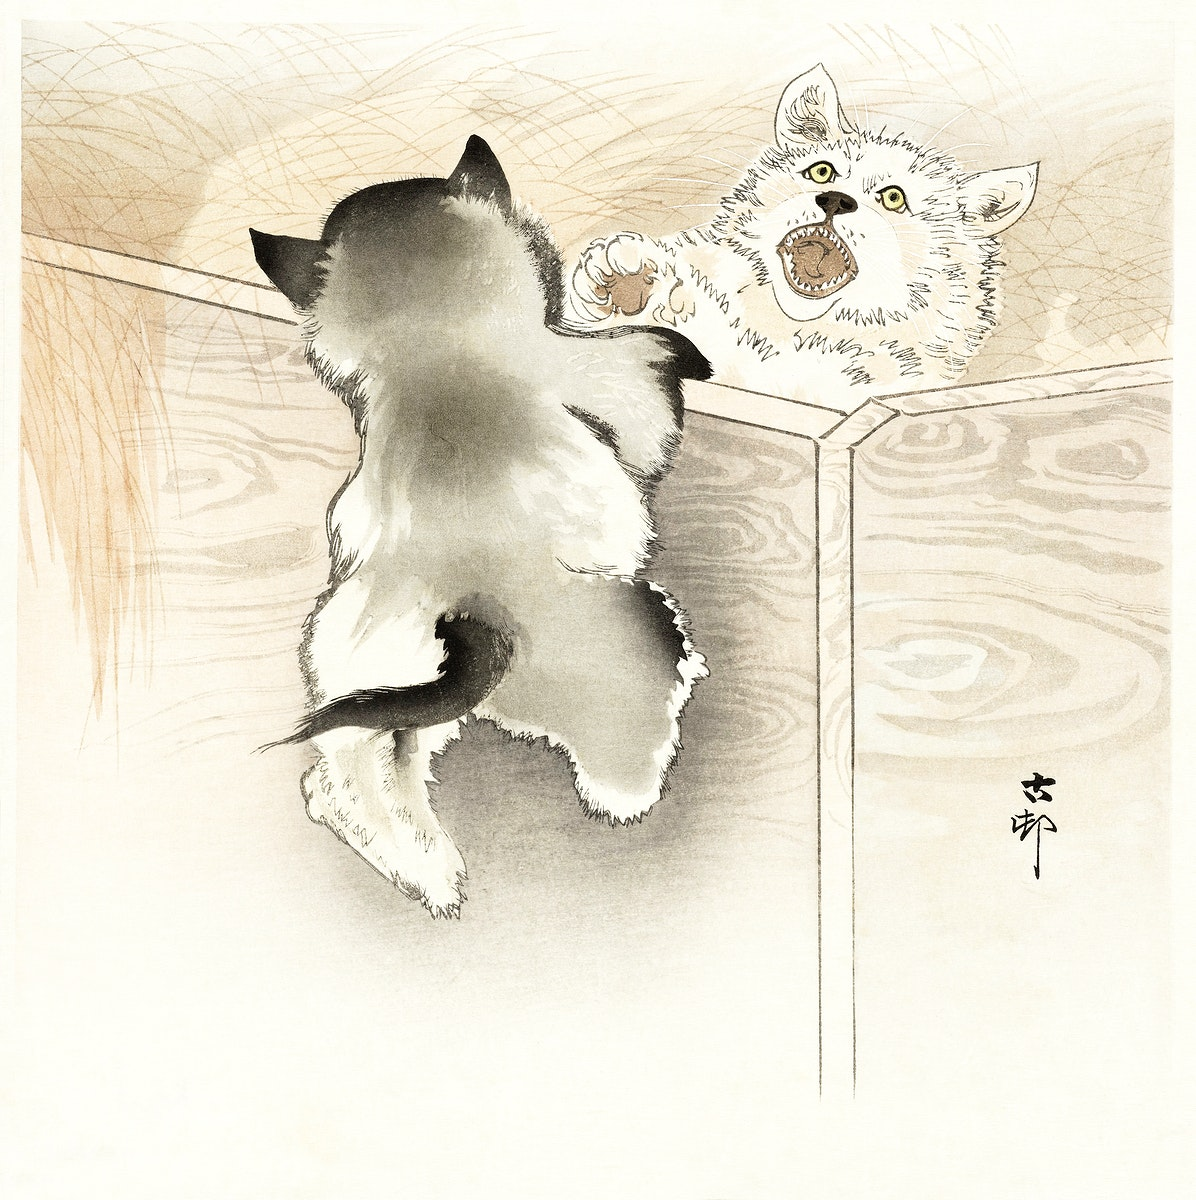 Two playing dogs (1900 - 1930) by Ohara Koson (1877-1945). Original from The Rijksmuseum. Digitally enhanced by rawpixel.